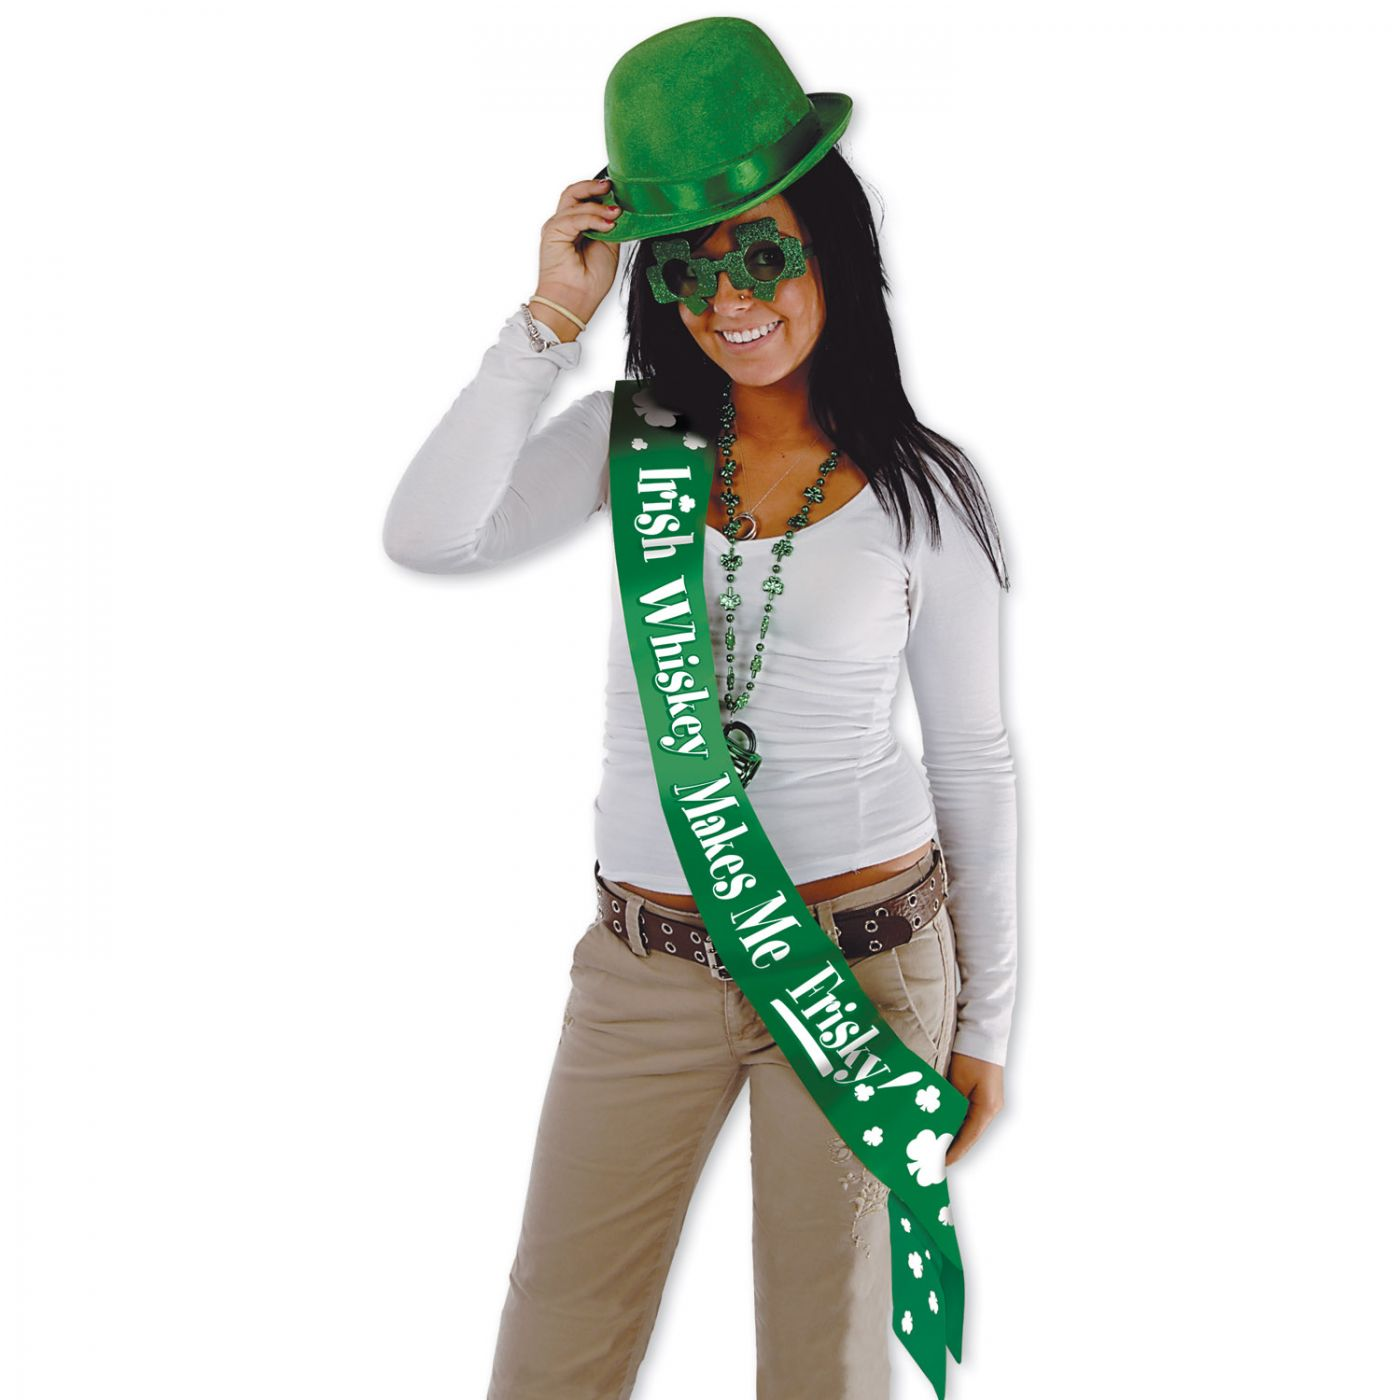 Irish Whiskey Makes Me Frisky! Satn Sash (6) image